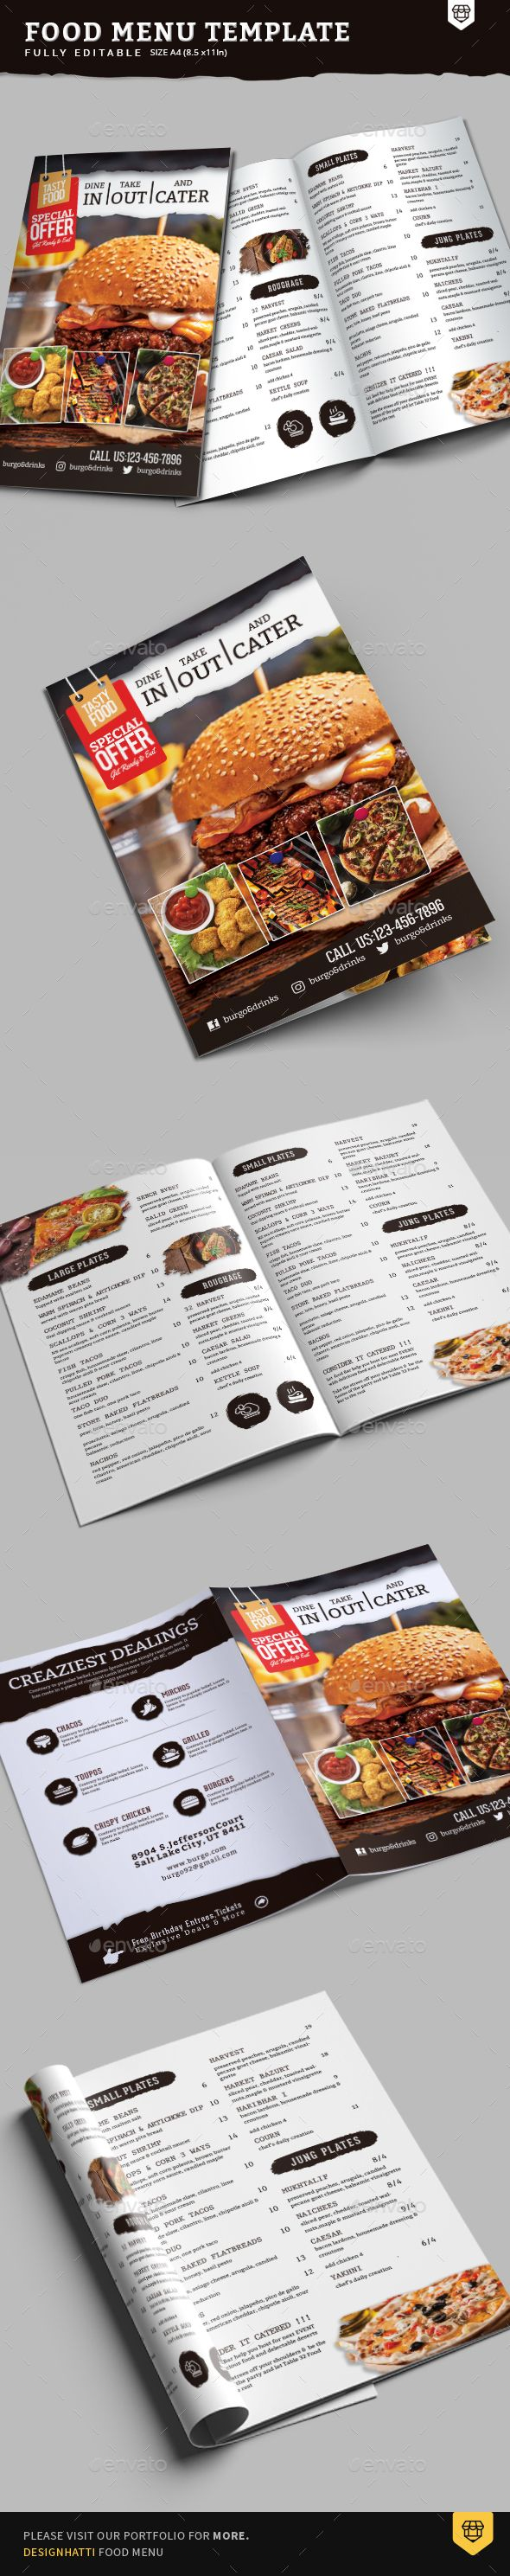 A4 BiFold Food Menu Template — Photoshop PSD #poster #bi fold • Available here ➝ https://graphicriver.net/item/a4-bifold-food-menu-template/20823707?ref=pxcr